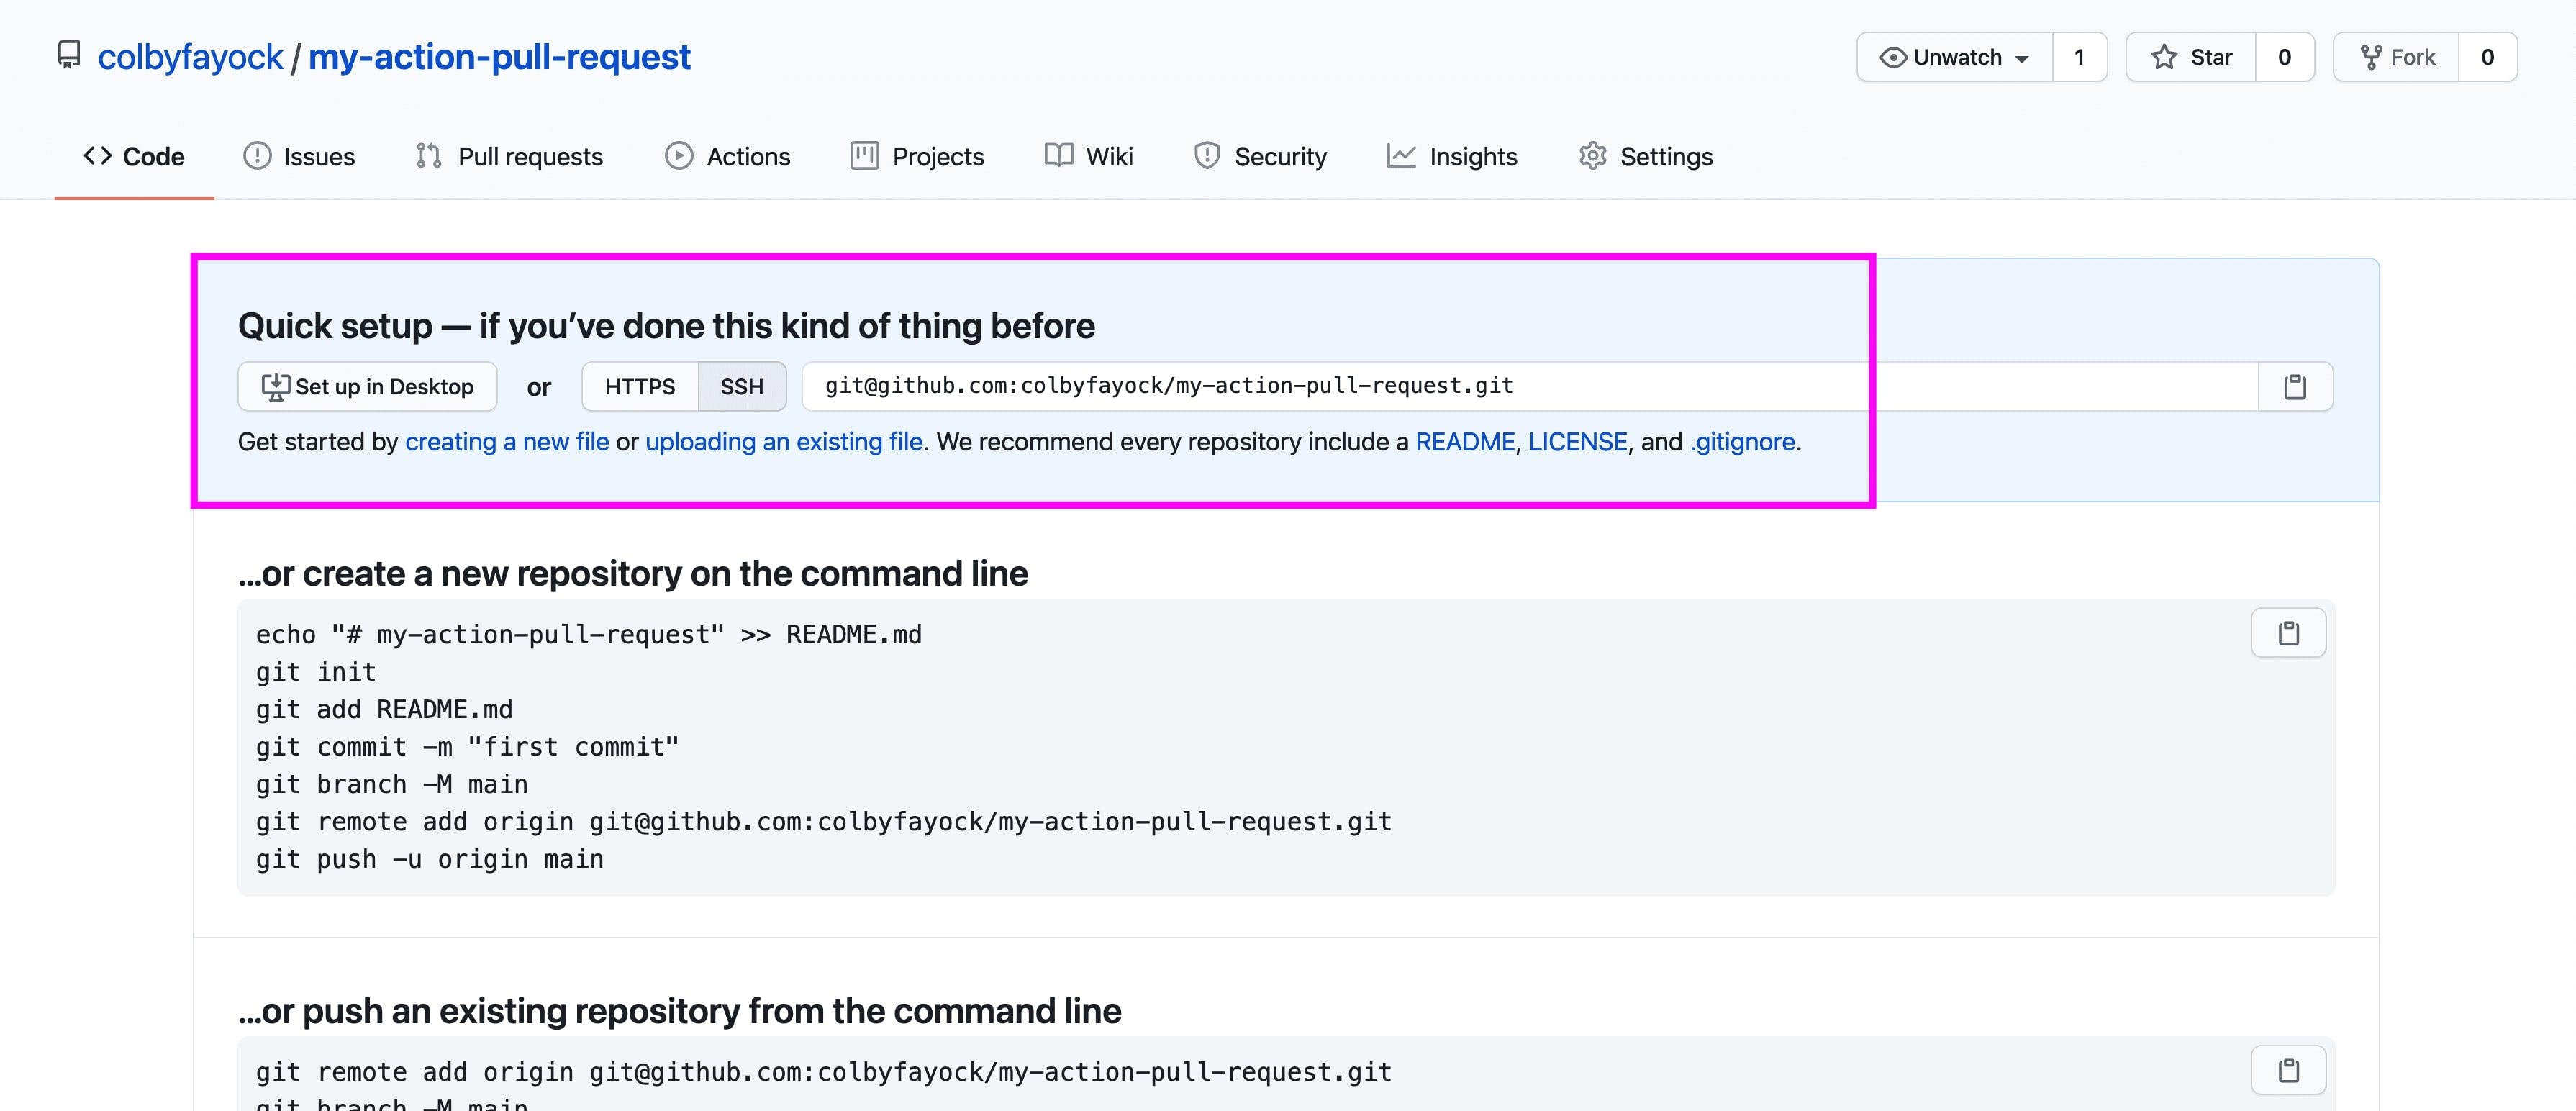 Quick setup in a new GitHub repository